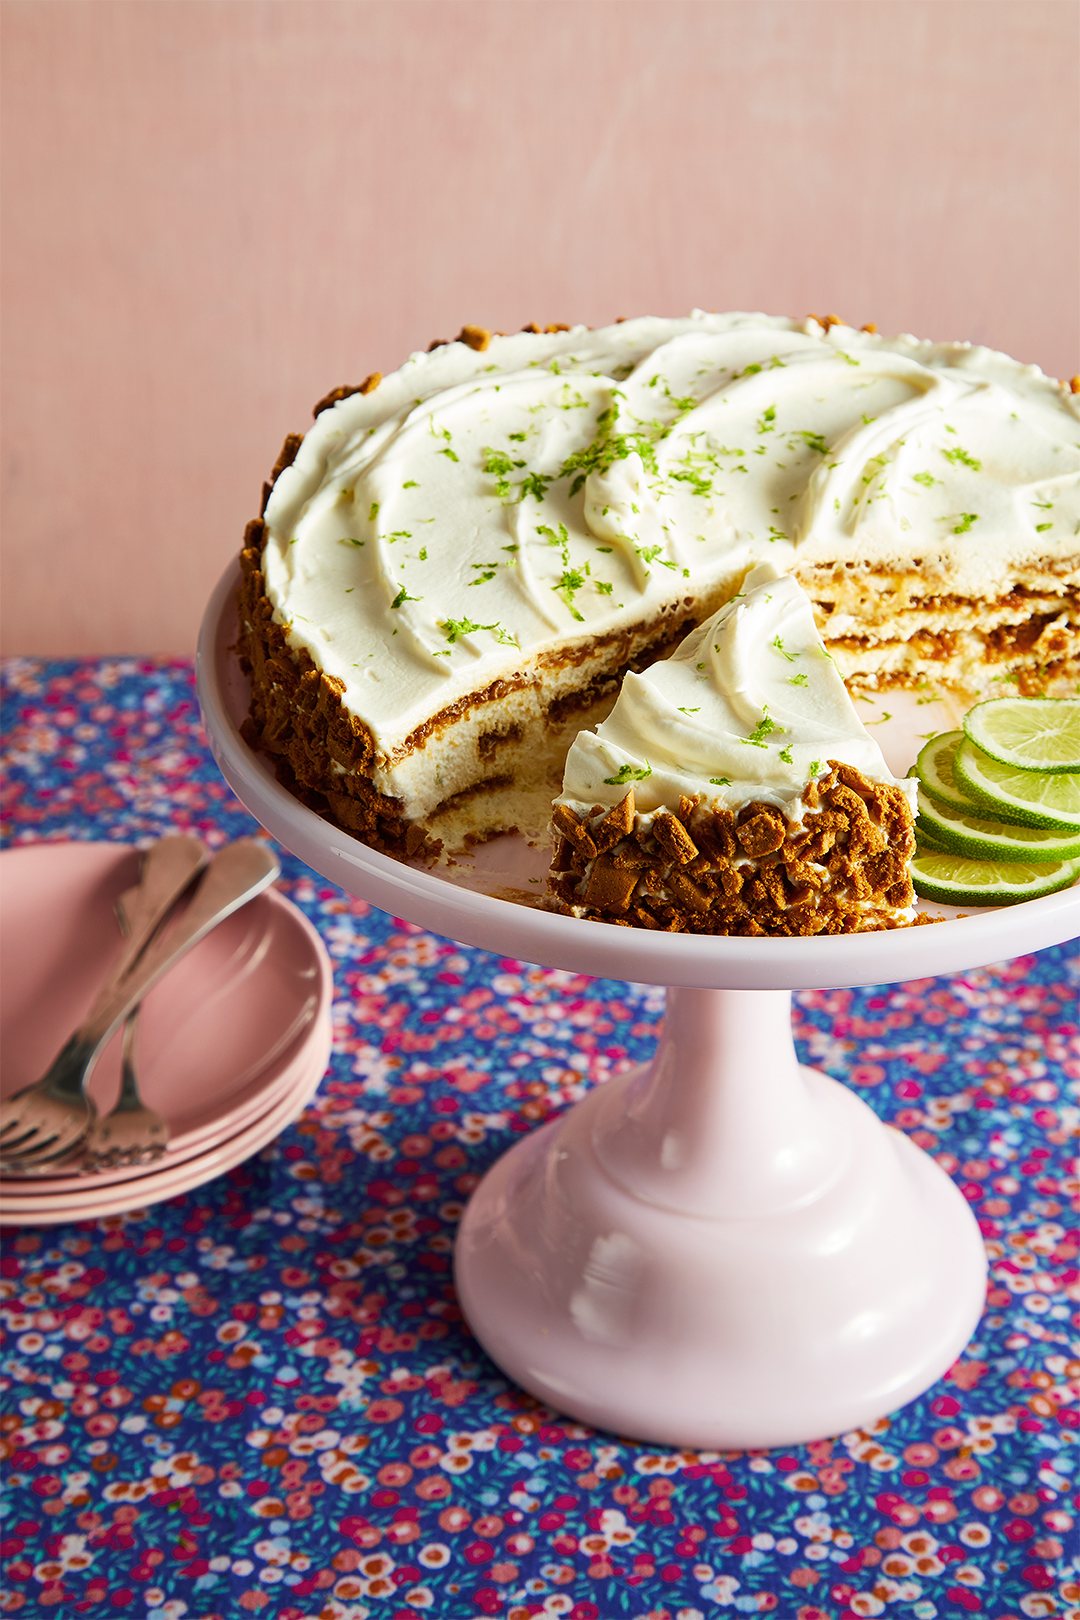 Ginger-Lime Icebox Cheesecake